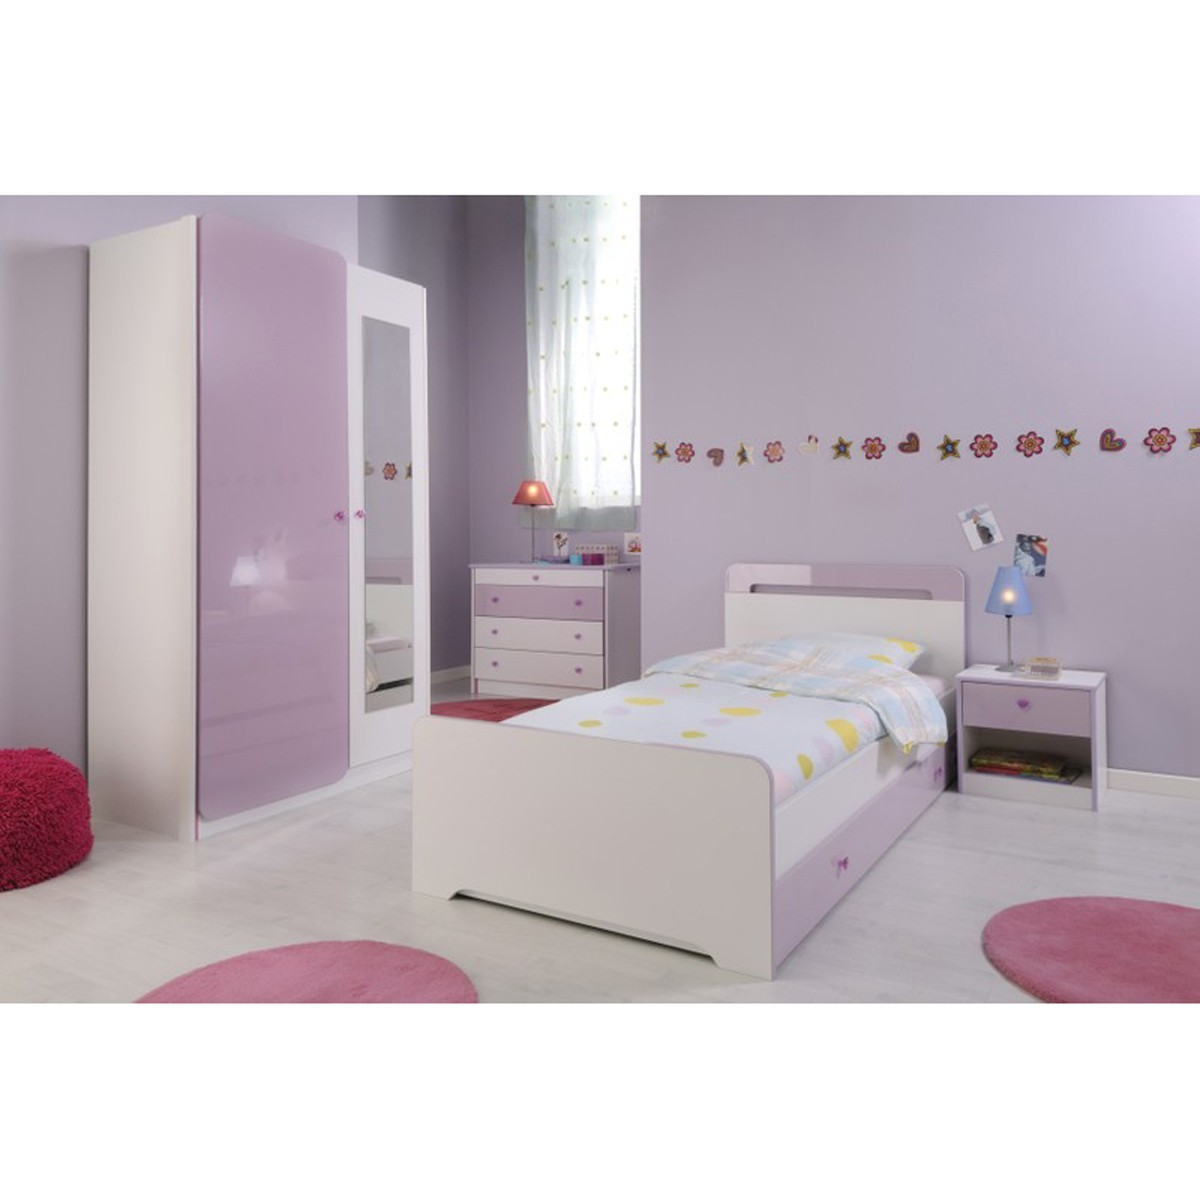 kinderbett jugendbett m dchenbett bett 90x200 wei. Black Bedroom Furniture Sets. Home Design Ideas